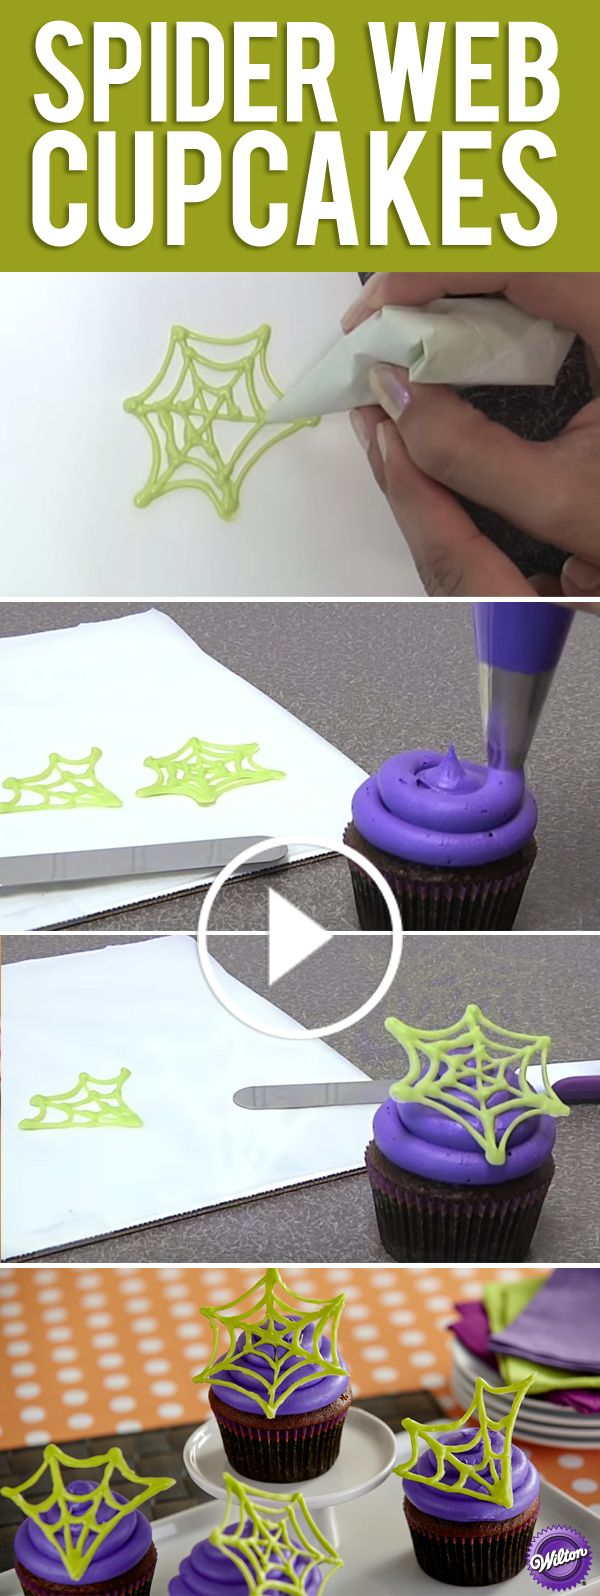 make candy spider web cupcake decorations for halloween watch our easy halloween cupcakes tutorial